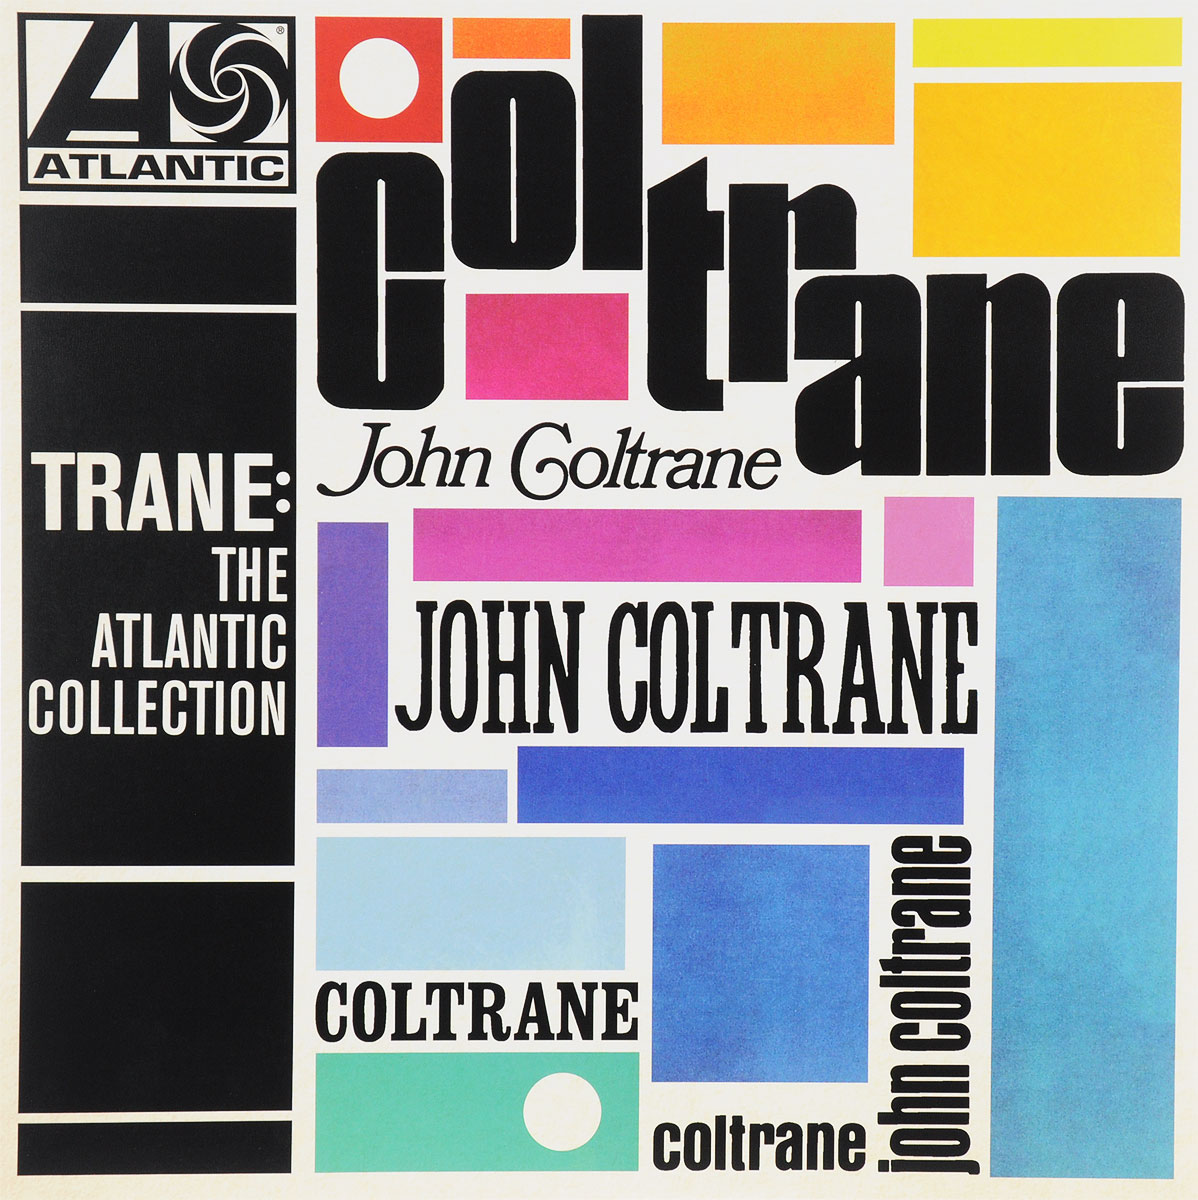 Джон Колтрейн John Coltrane. Trane. The Atlantic Collection (LP) джон колтрейн маккой тайнер стив дэвис элвин джонс john coltrane my favorite things lp